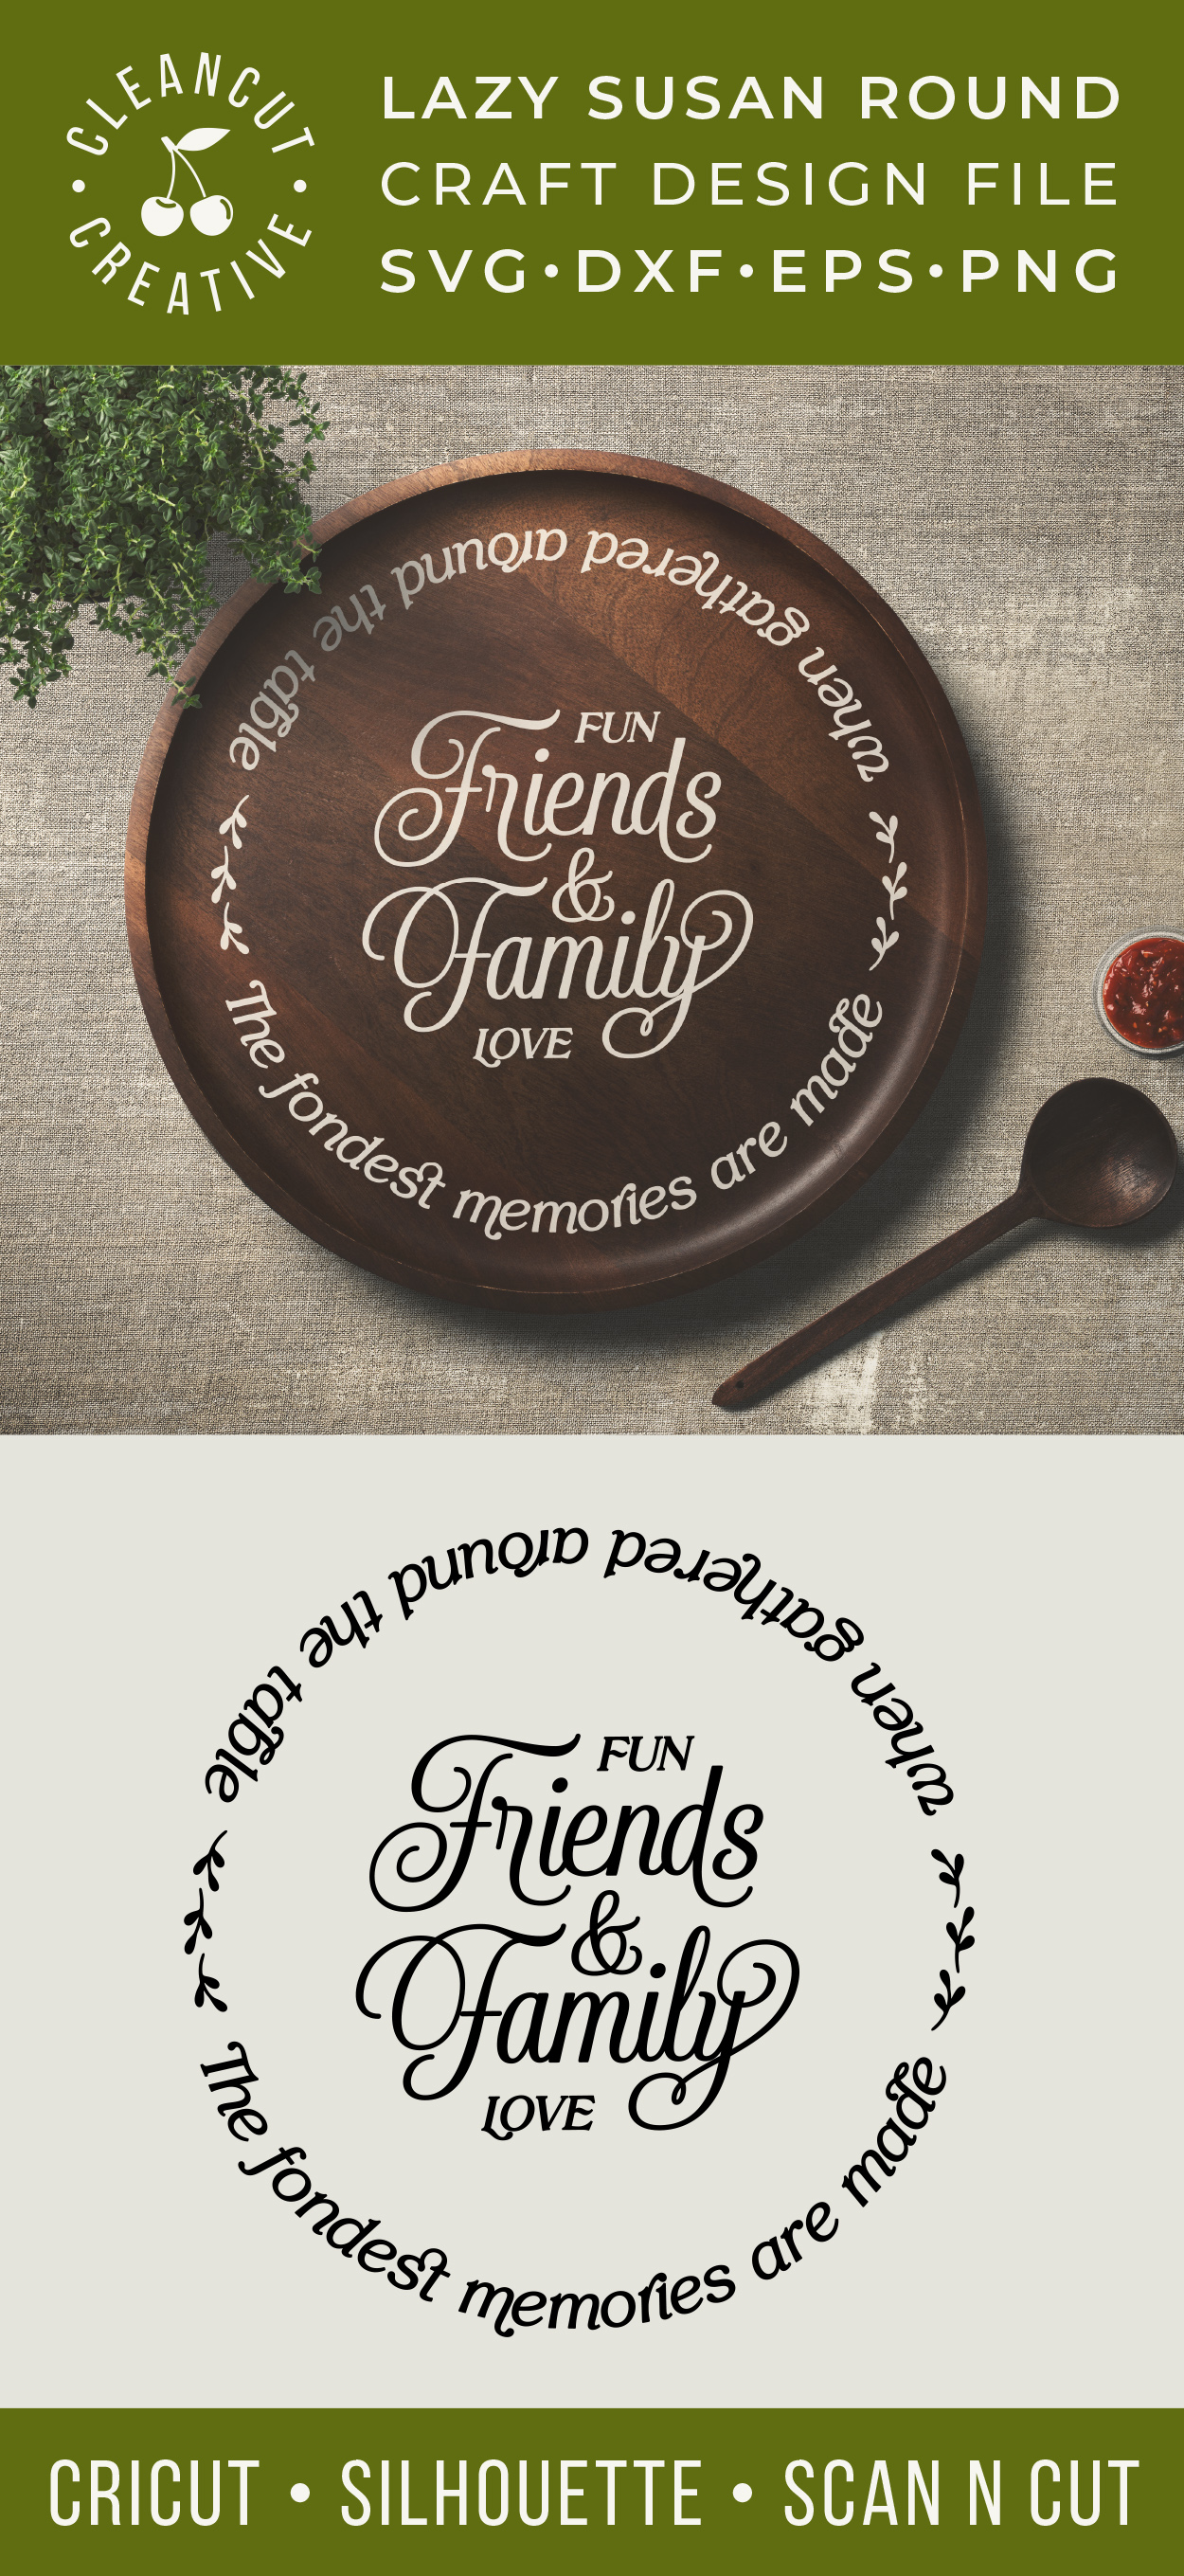 Friends & Family Fondest Memories Gathered Table - round svg example image 3